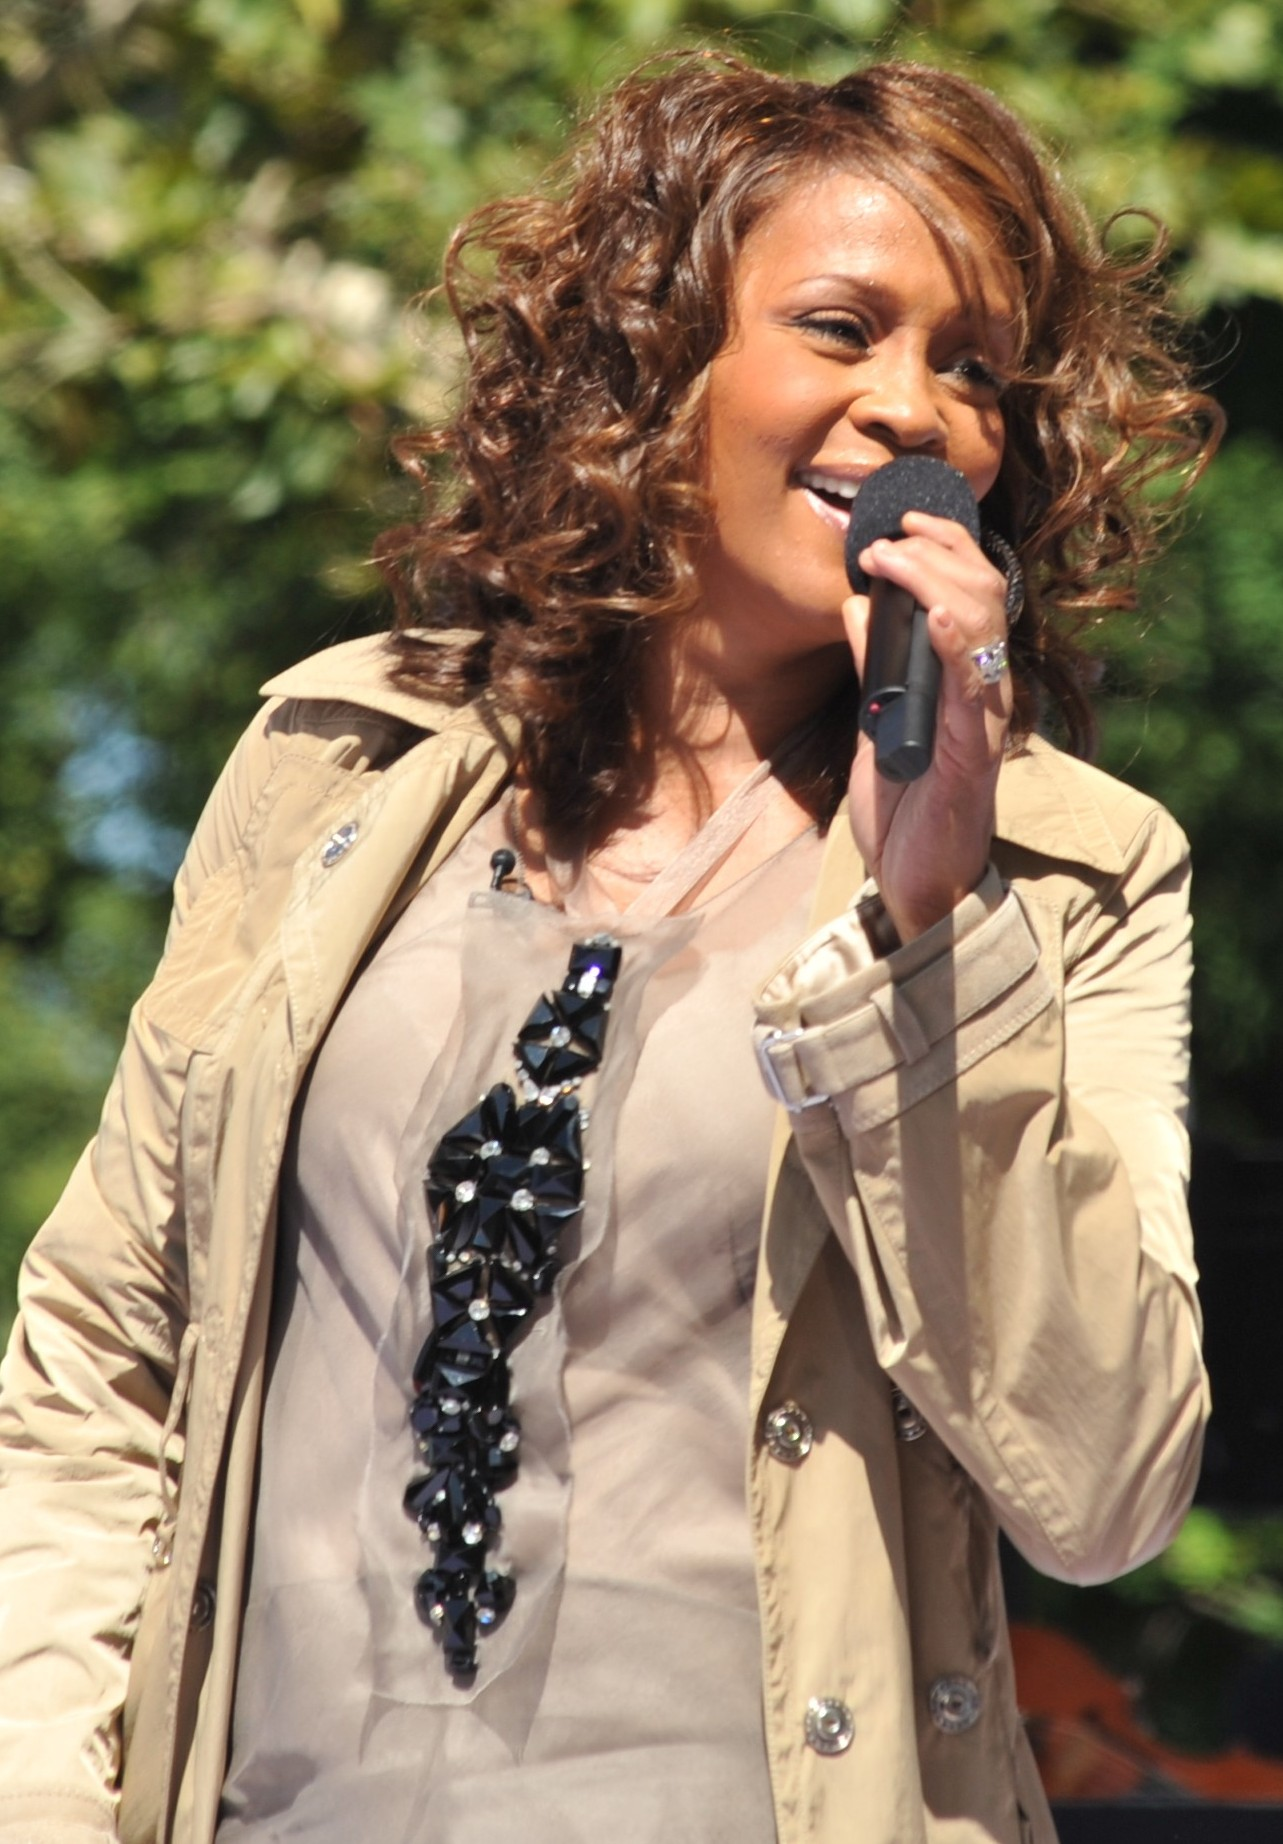 http://upload.wikimedia.org/wikipedia/commons/0/0f/Flickr_Whitney_Houston_performing_on_GMA_2009_4.jpg